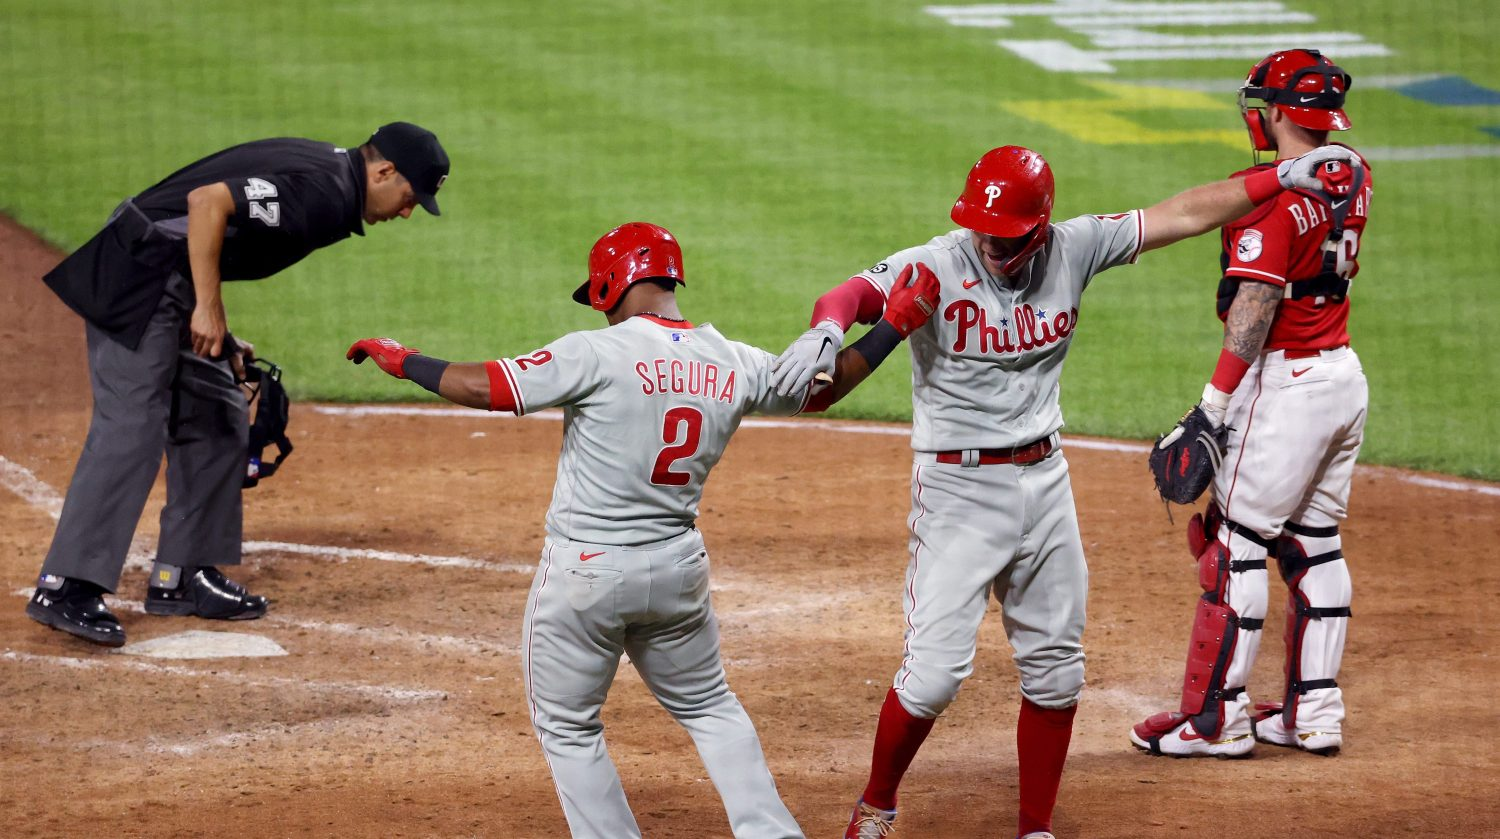 Phillies Explode For 17 Runs On 7 Homers In Rout Of Reds